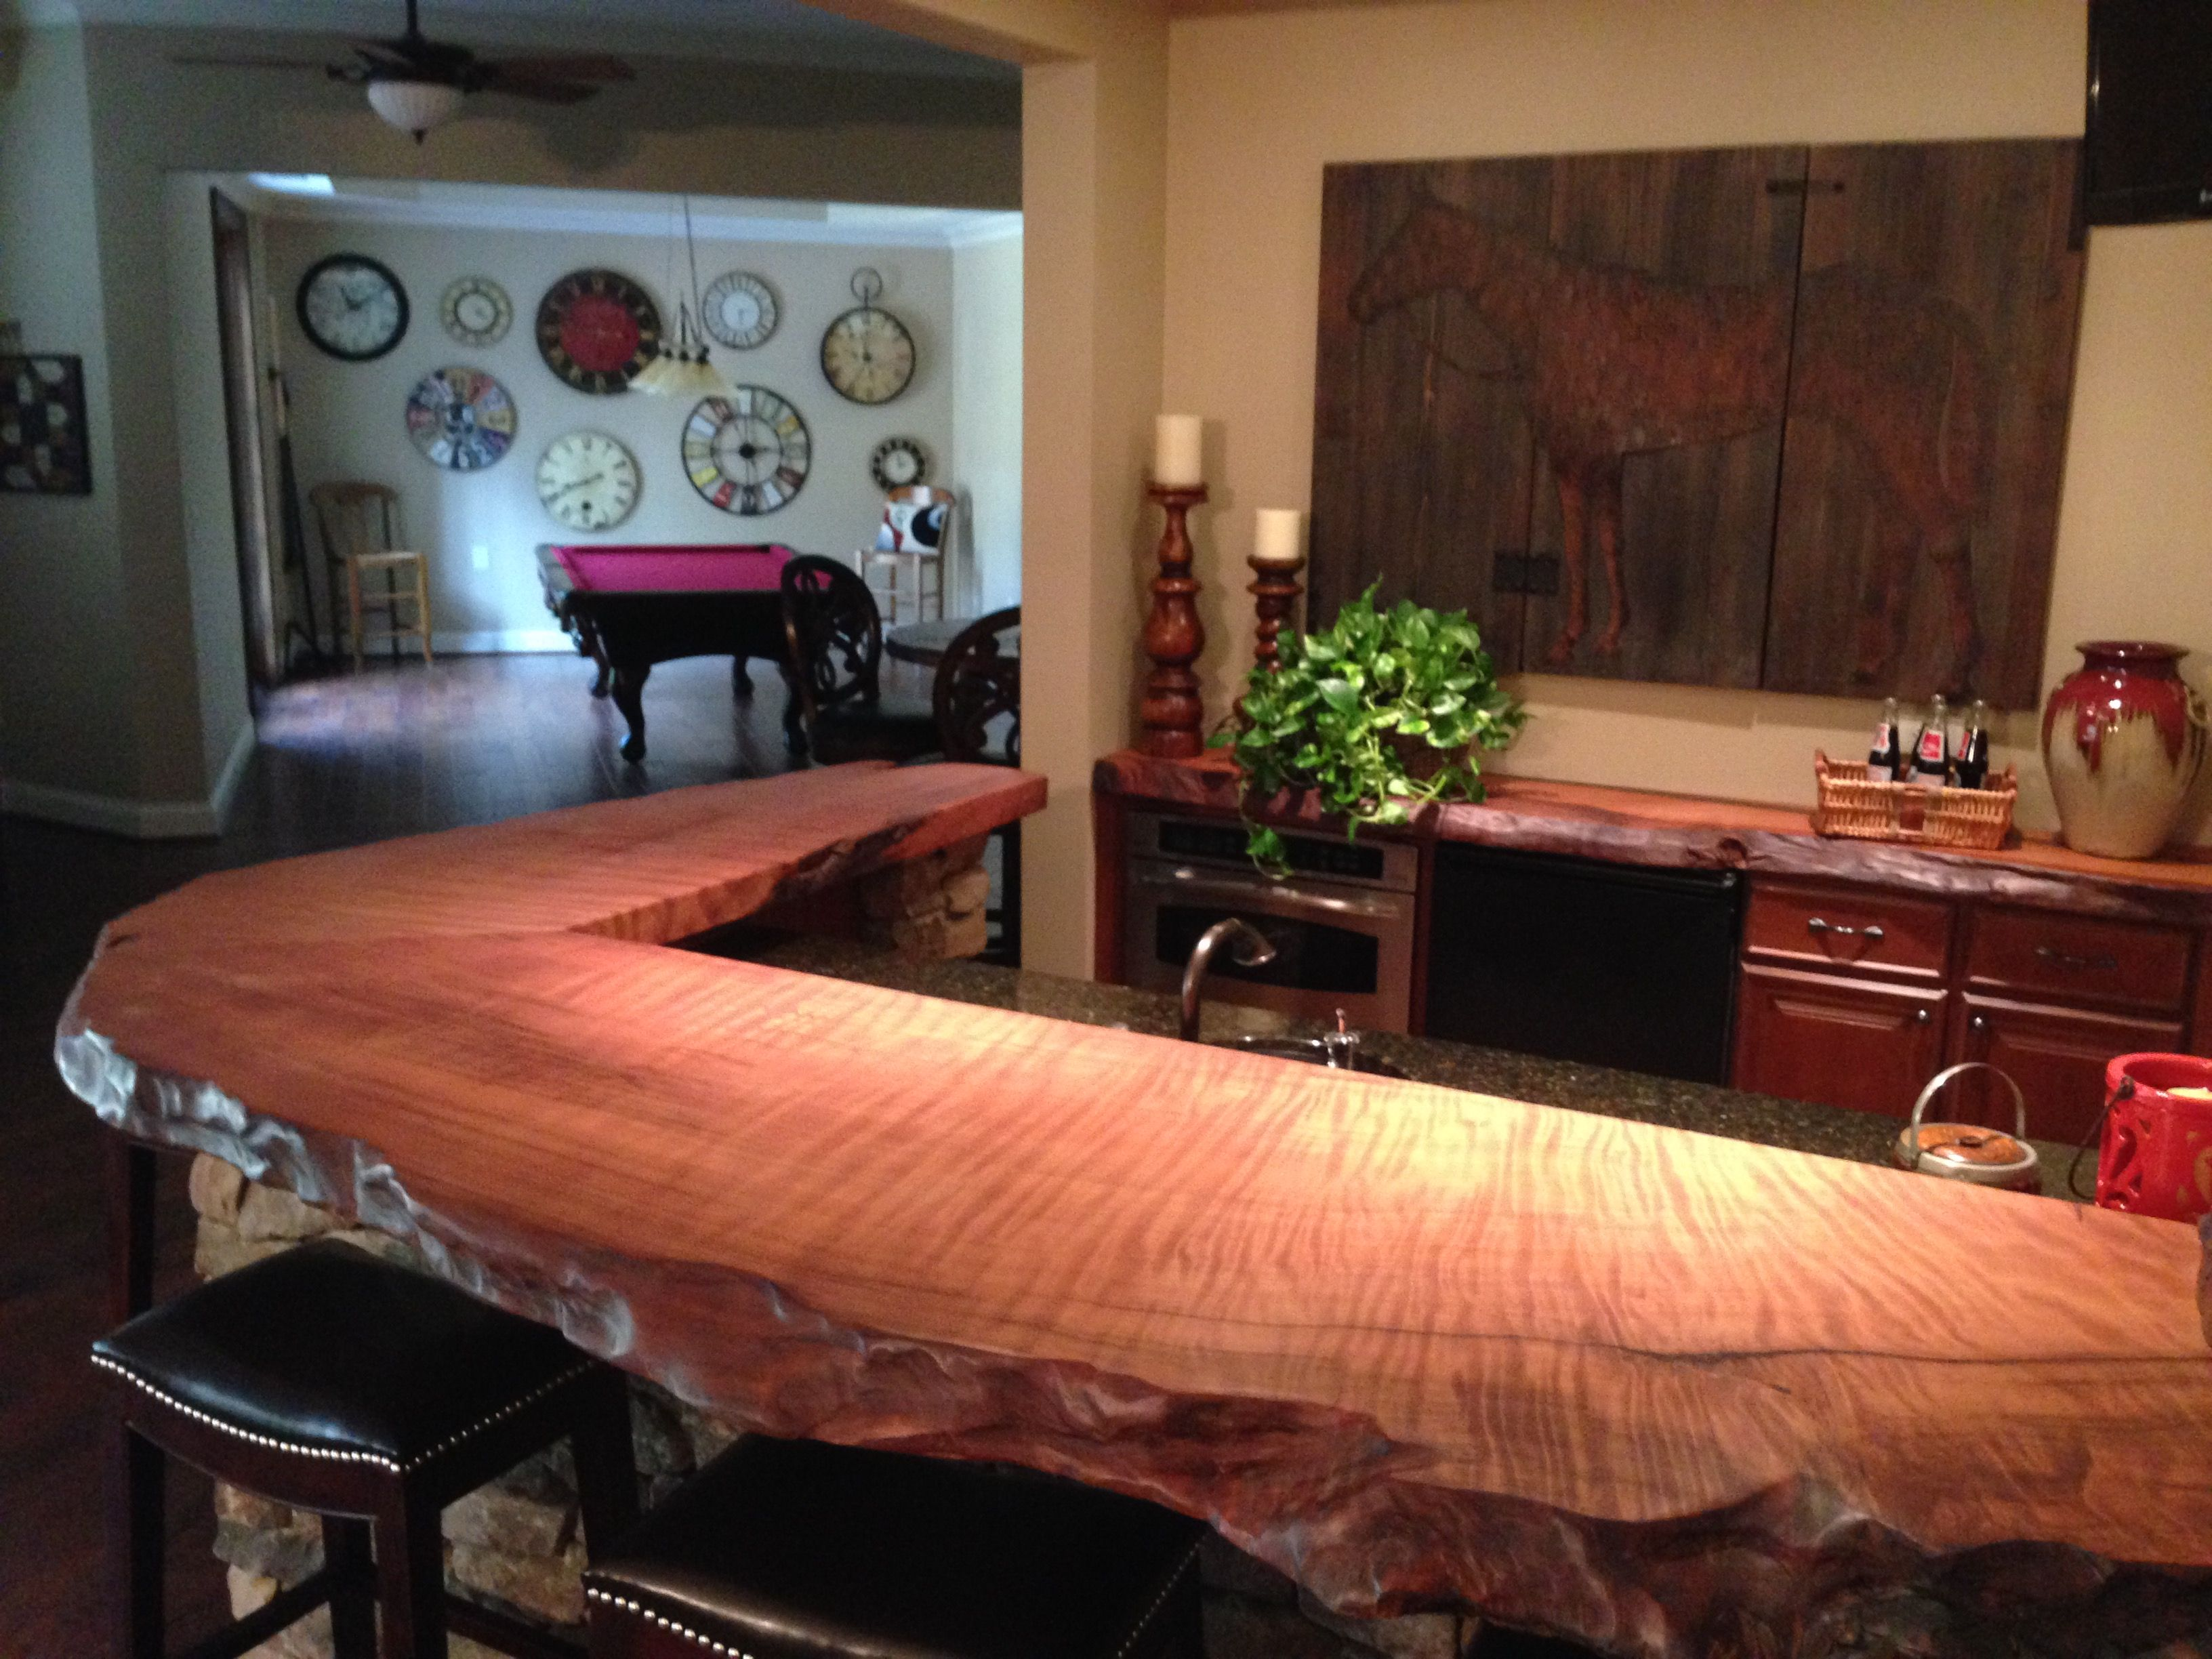 Unique Countertops Wood Countertop Handcrafted Using A Burl Wood Slab Cut From A